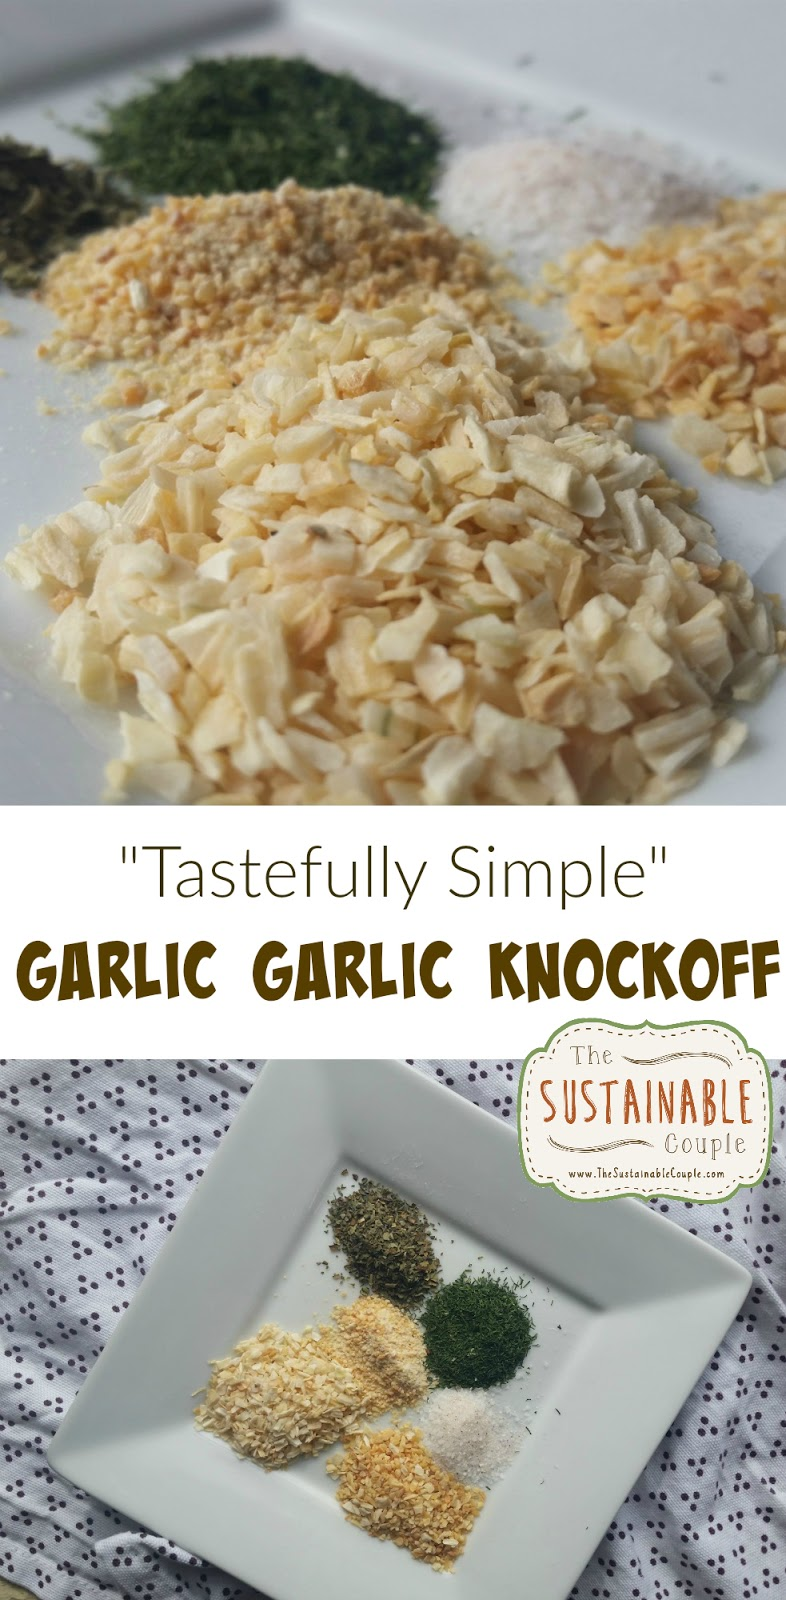 The Sustainable Couple: Tastefully Simple Garlic Garlic Knock-off